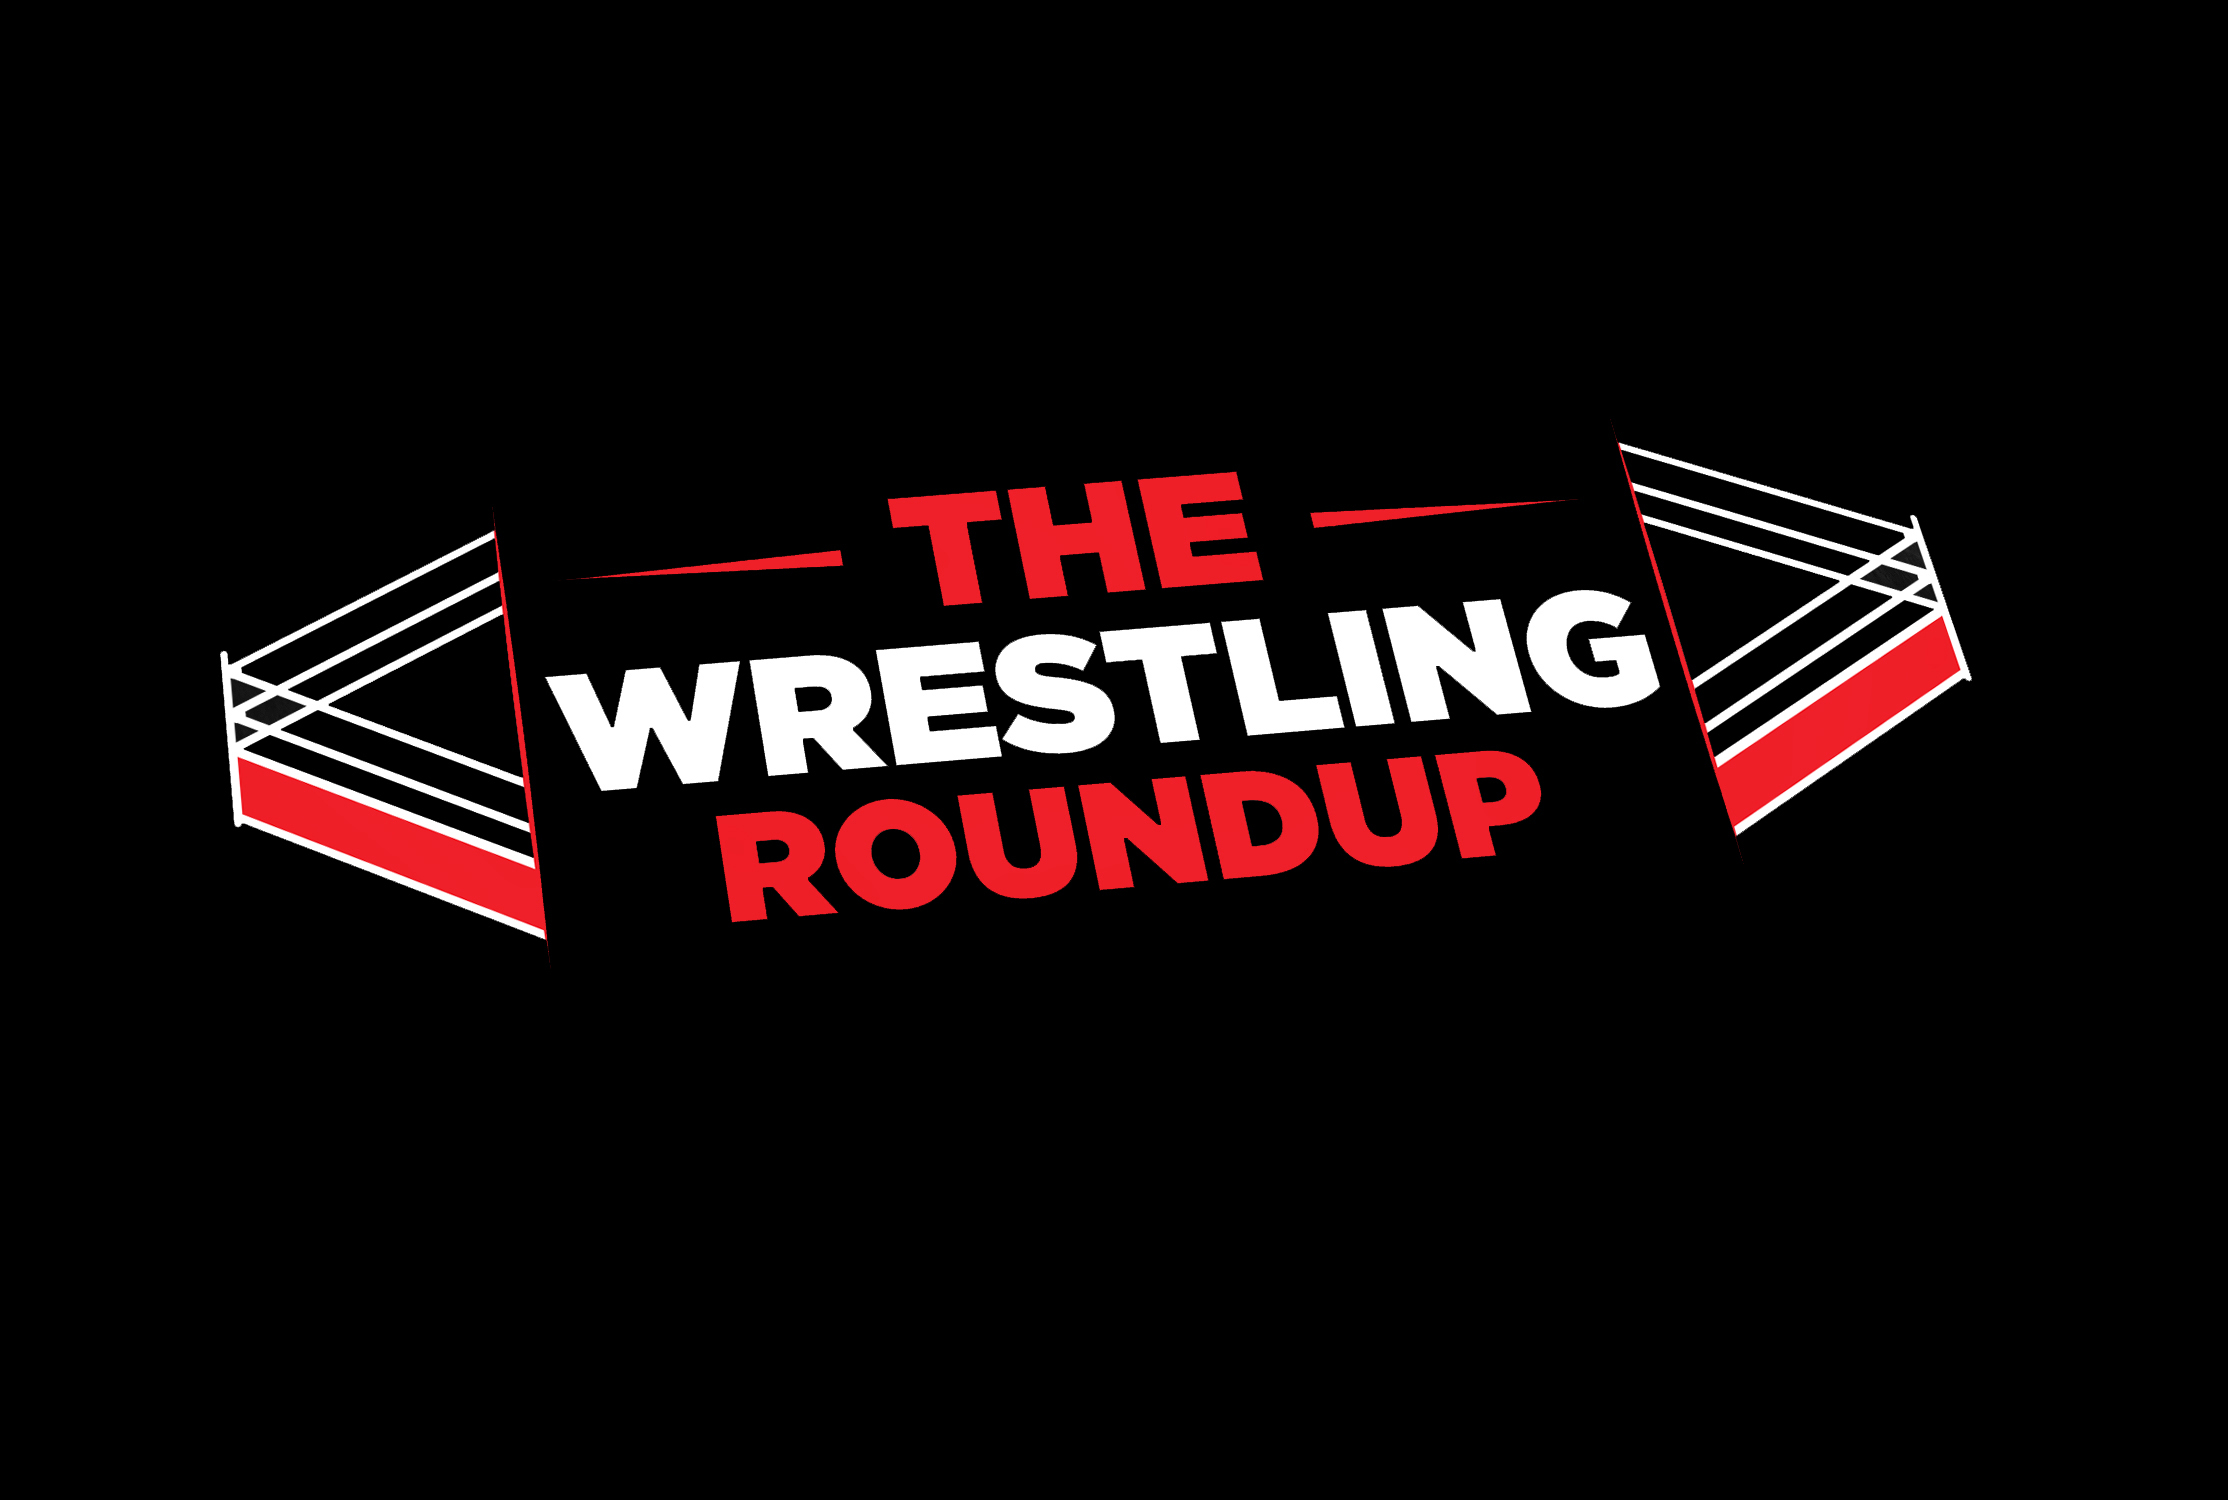 The Wrestling Roundup